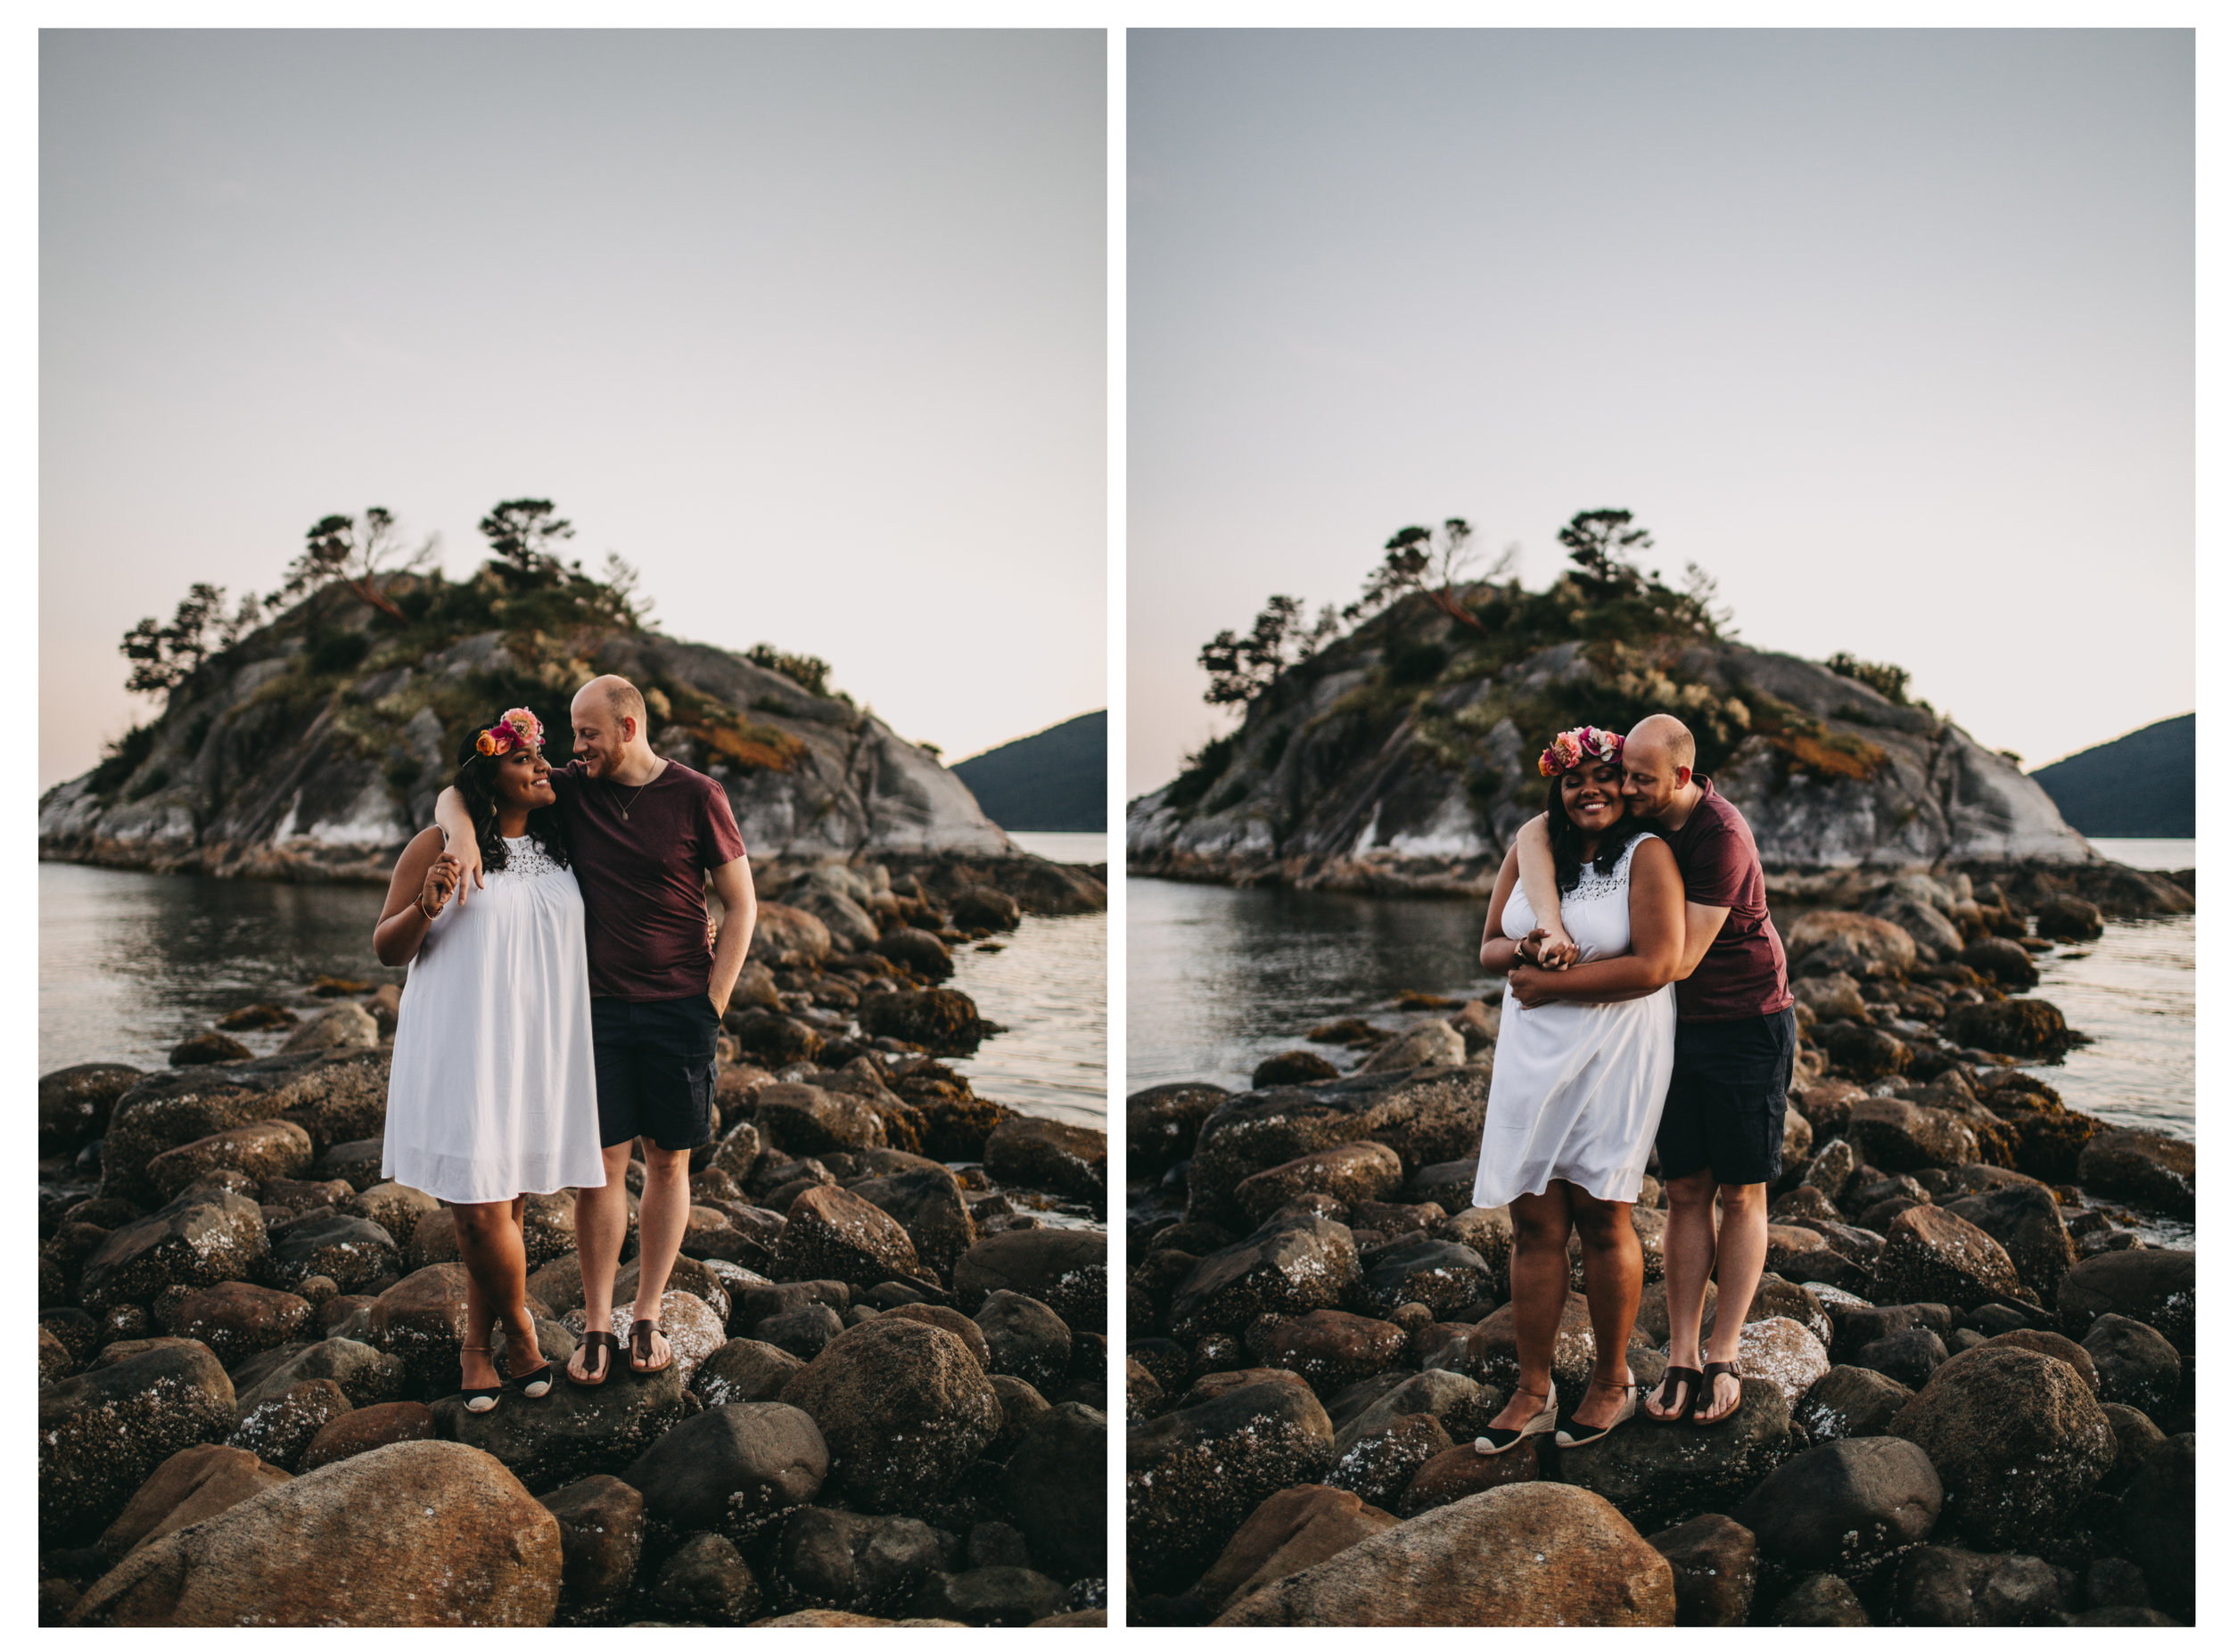 "<img src=""engagement.jpg"" alt=""couple standing on rocks at whytecliff park during sunset "">"